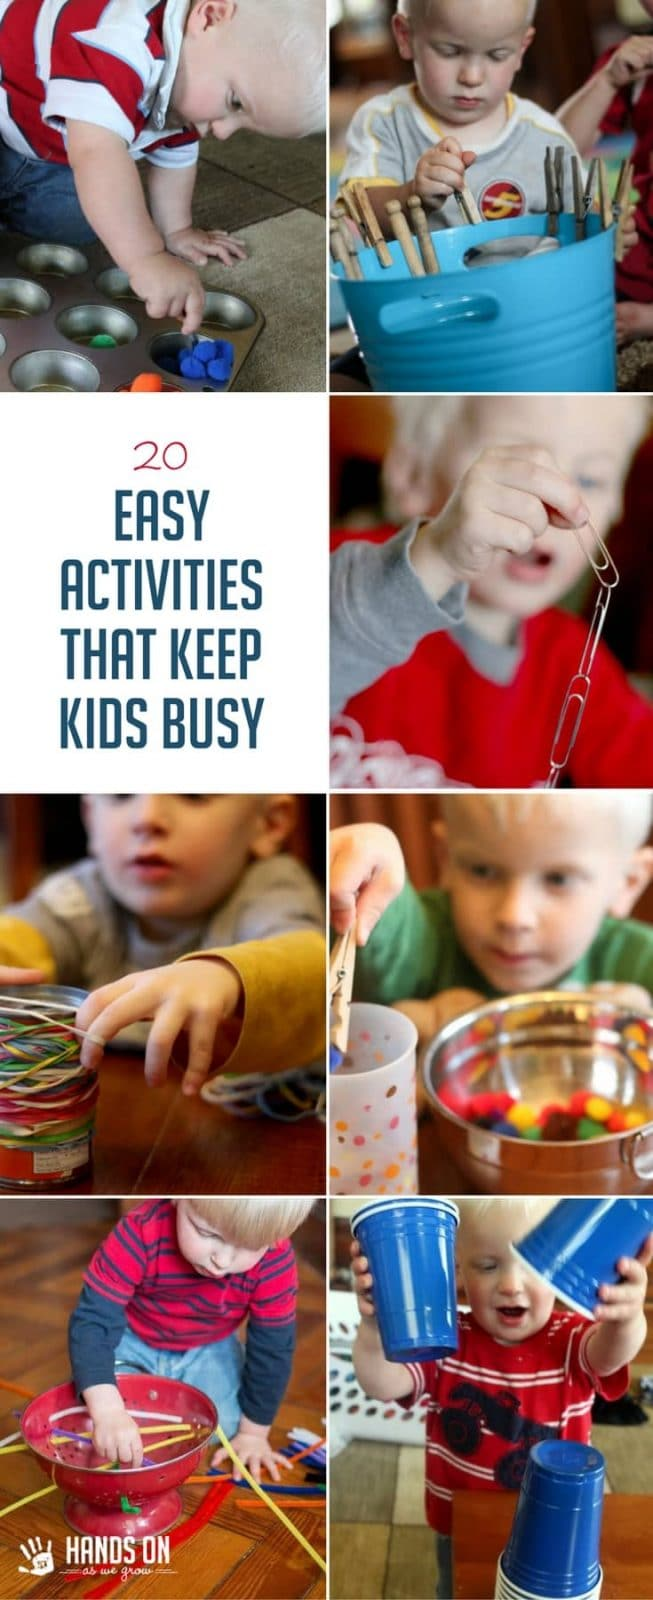 Keep your child busy and engaged with these 20 easy activities using materials you probably already have at home. Set up is super simple, too!